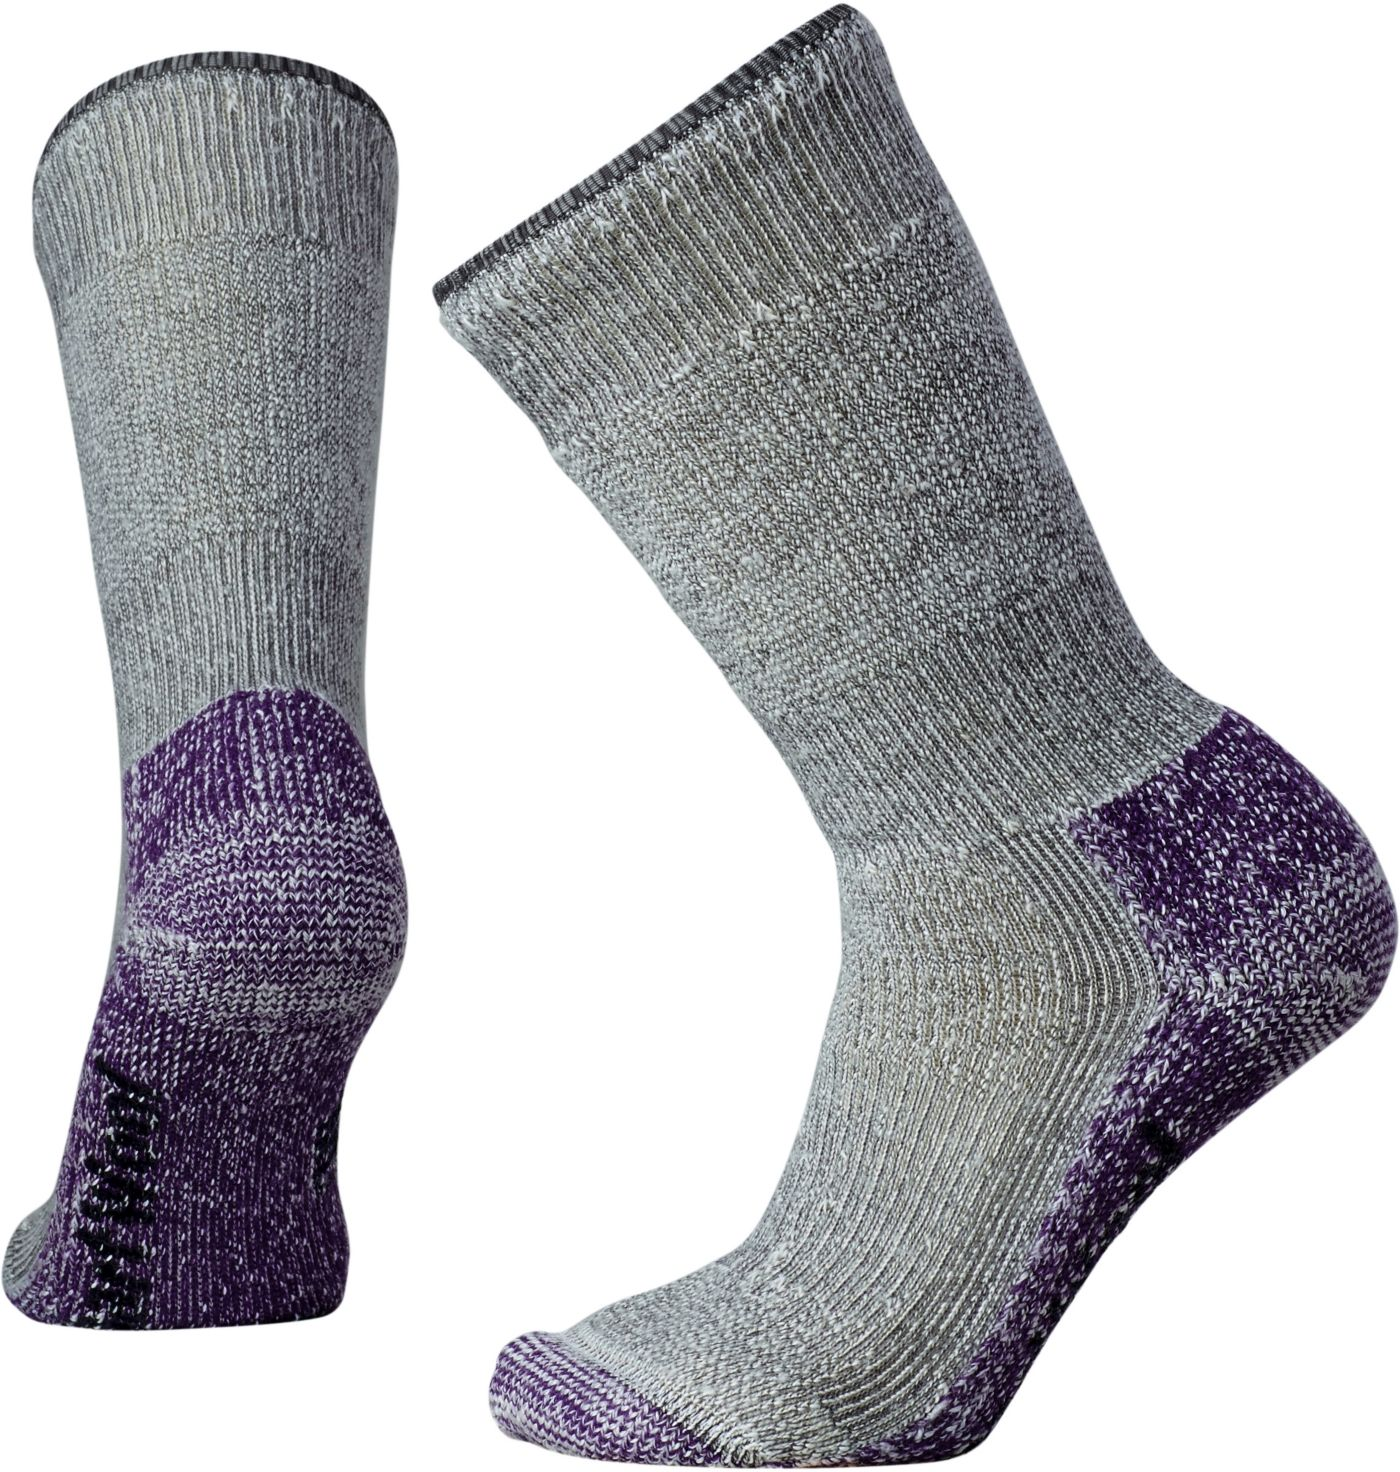 Smartwool Women's Mountaineering Extra Heavy Crew Hunting Socks